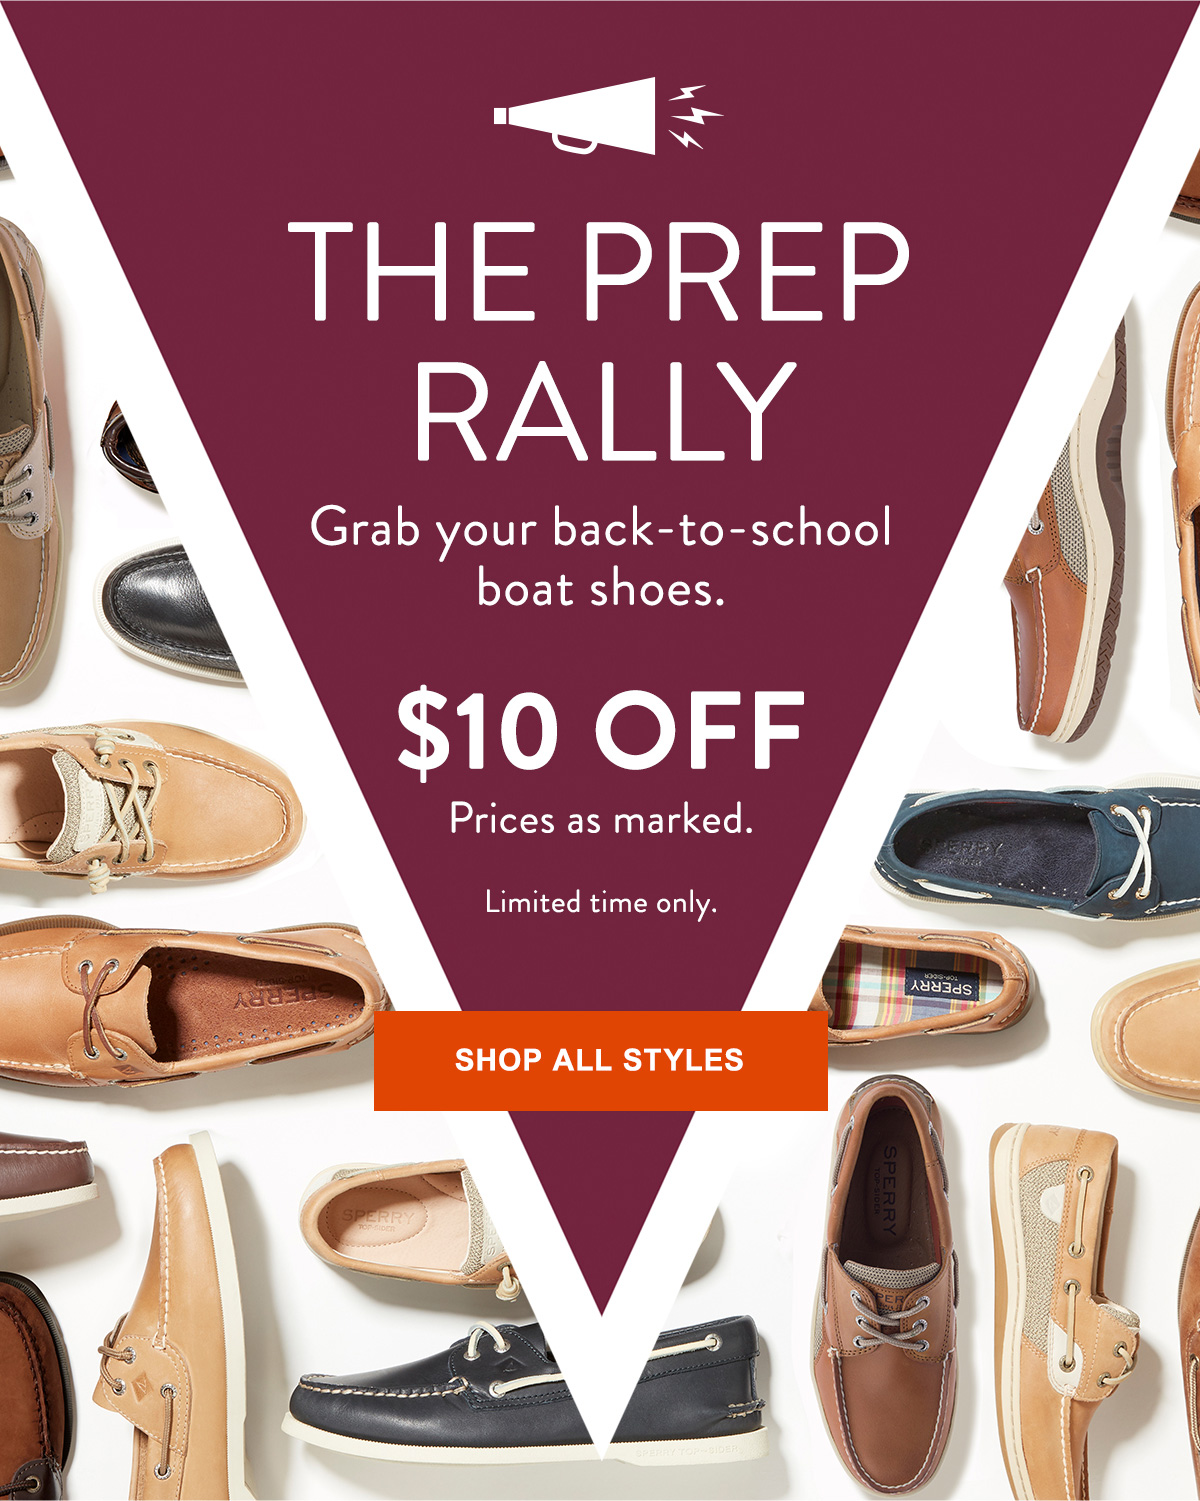 THE PREP RALLY. $10 OFF PRICES AS MARKED.